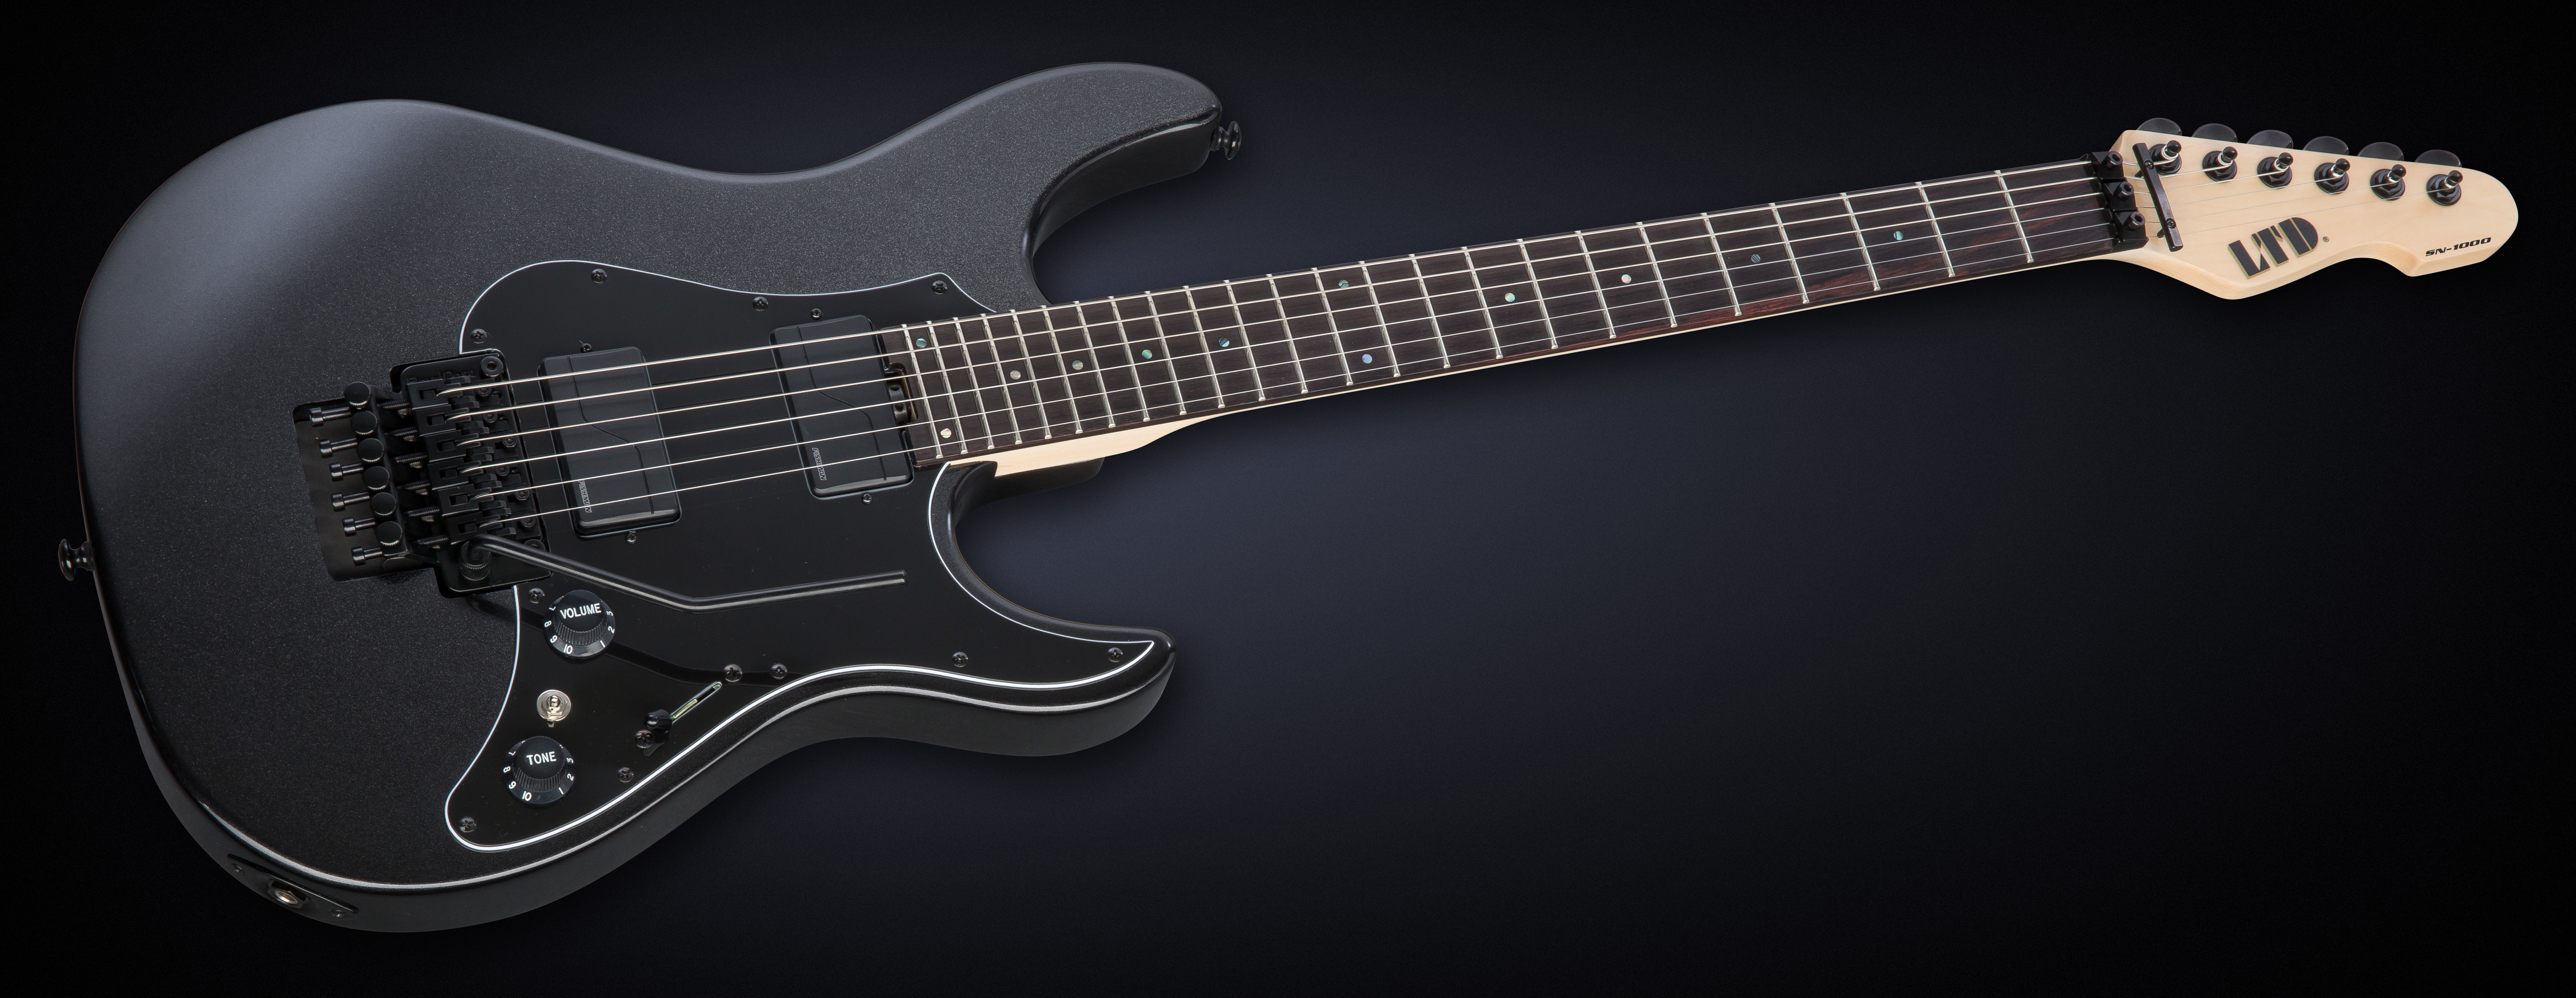 esp guitar company chooses fluence modern humbuckers for ams exclusive fishman. Black Bedroom Furniture Sets. Home Design Ideas